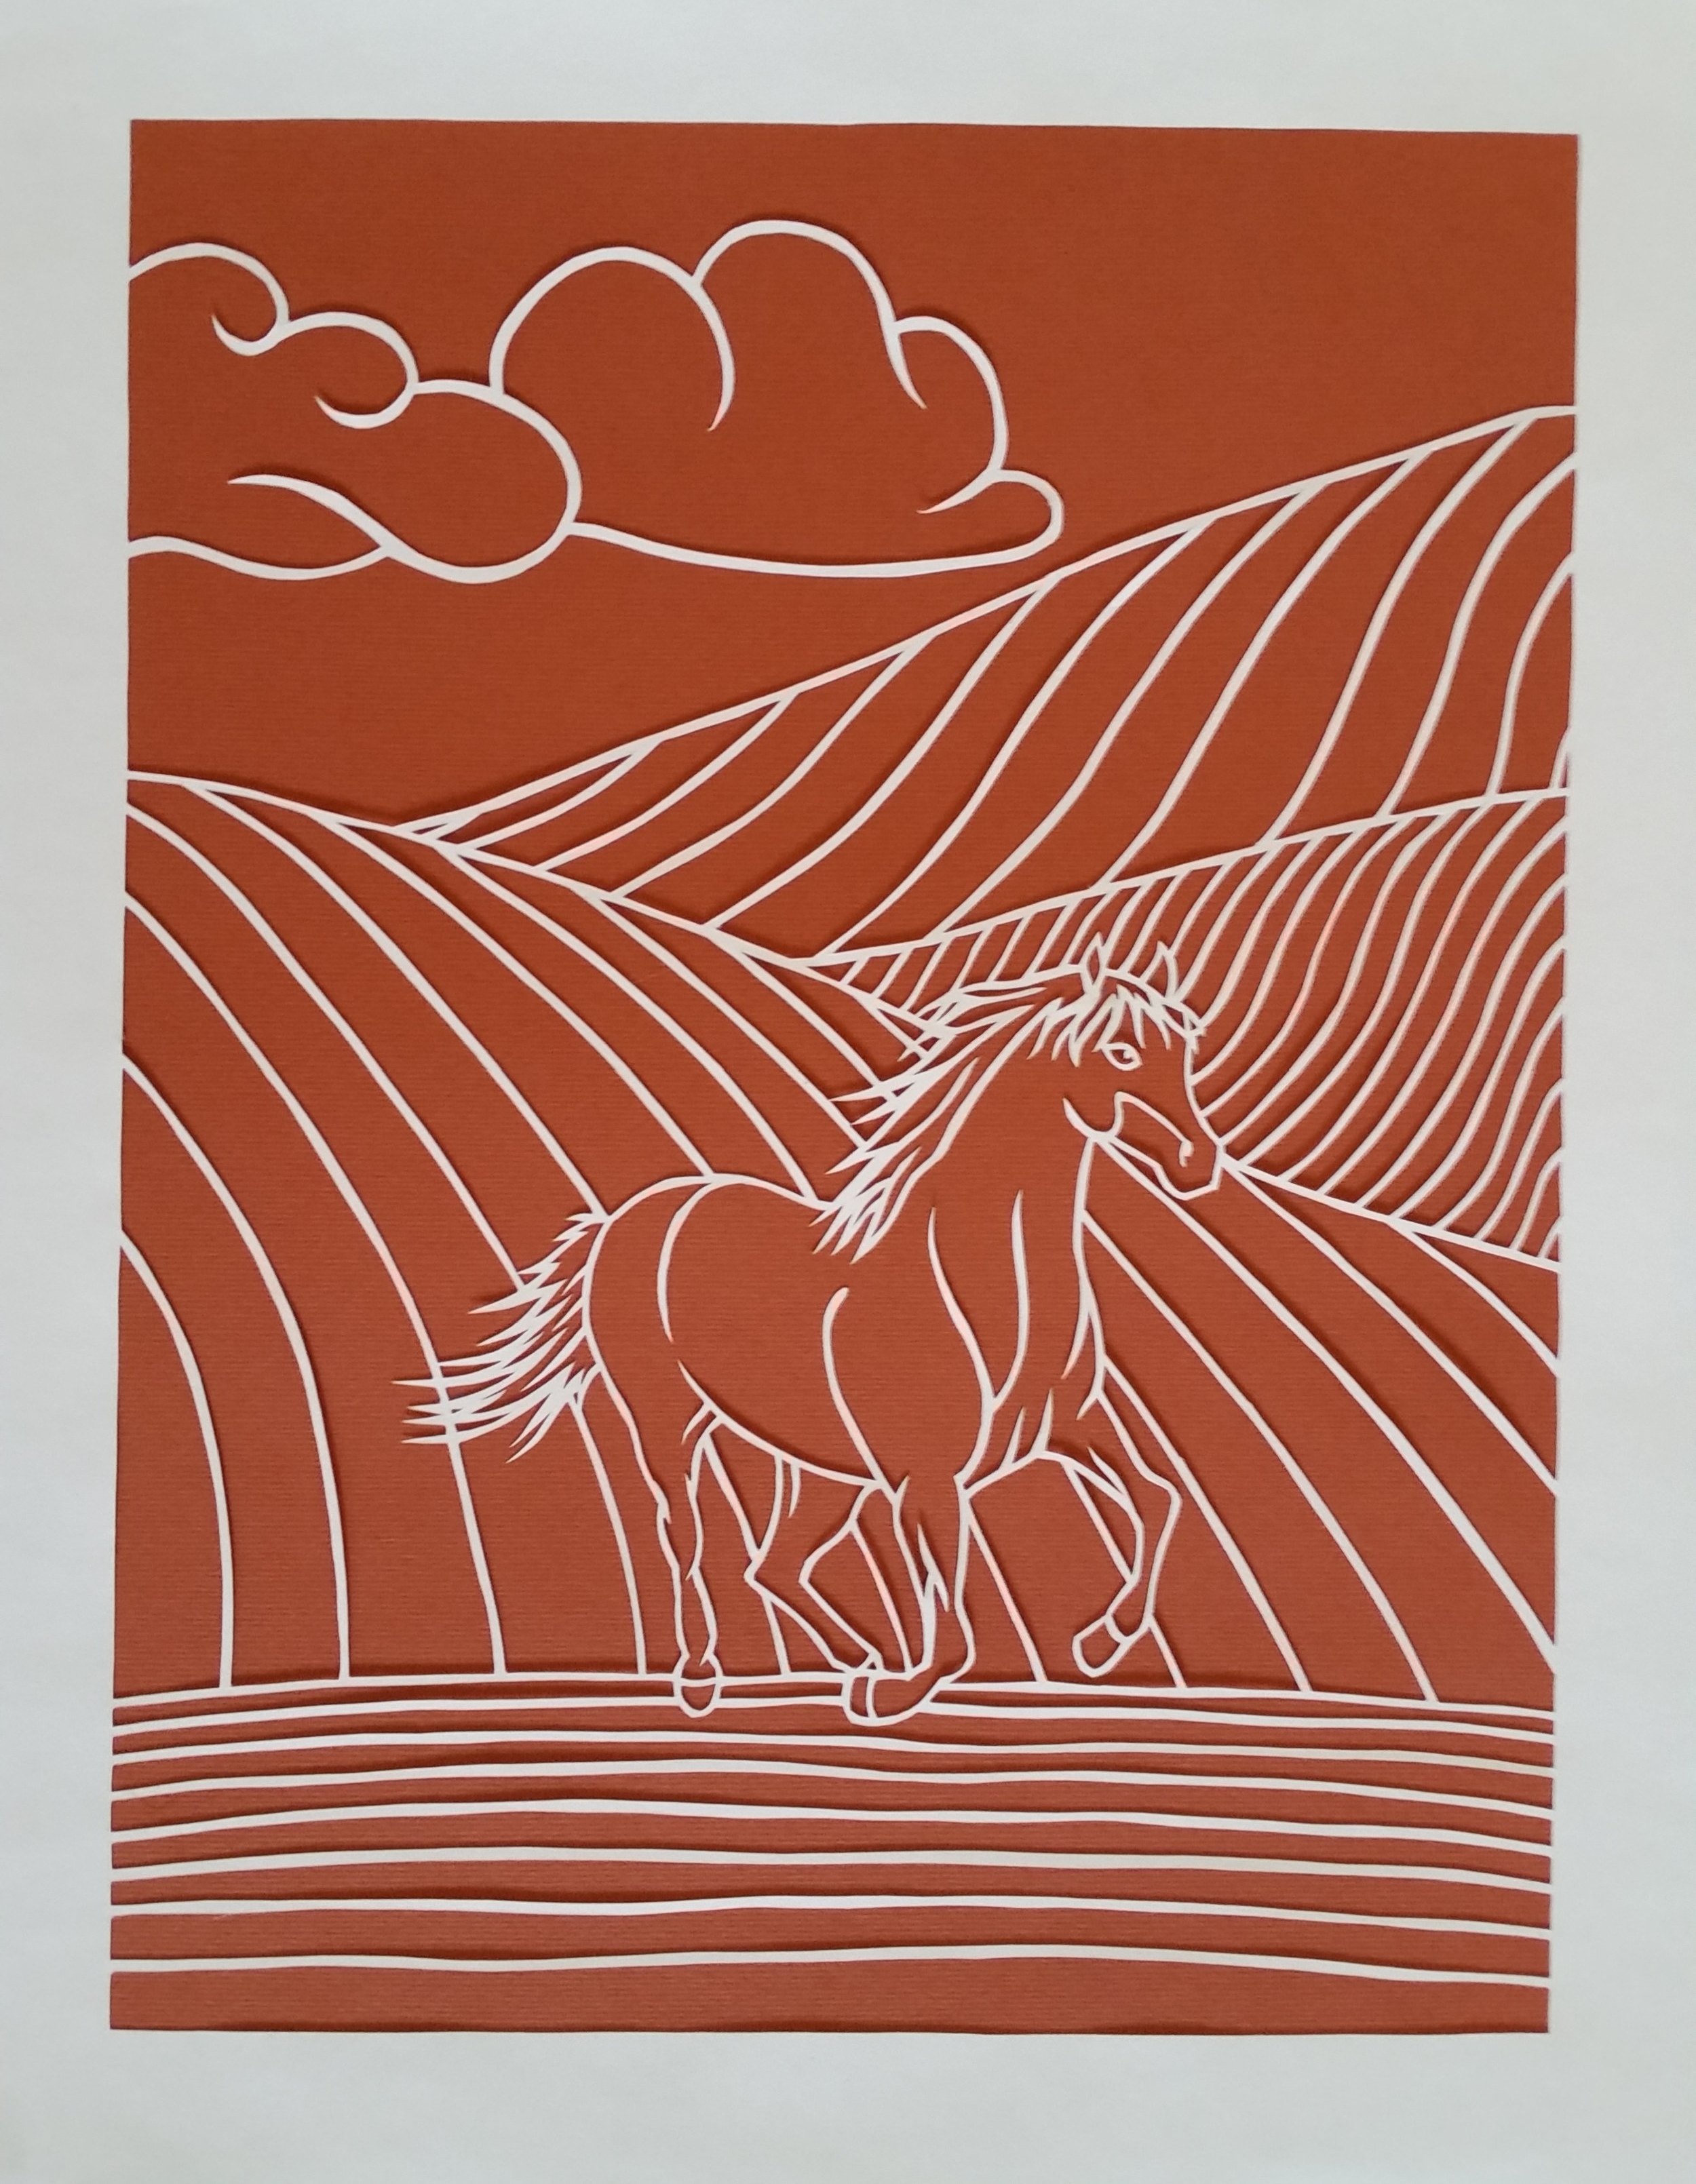 """""""Free to Be""""   Measures 11 x 14 inches. White on orange background.   Contact Us  for purchase details."""